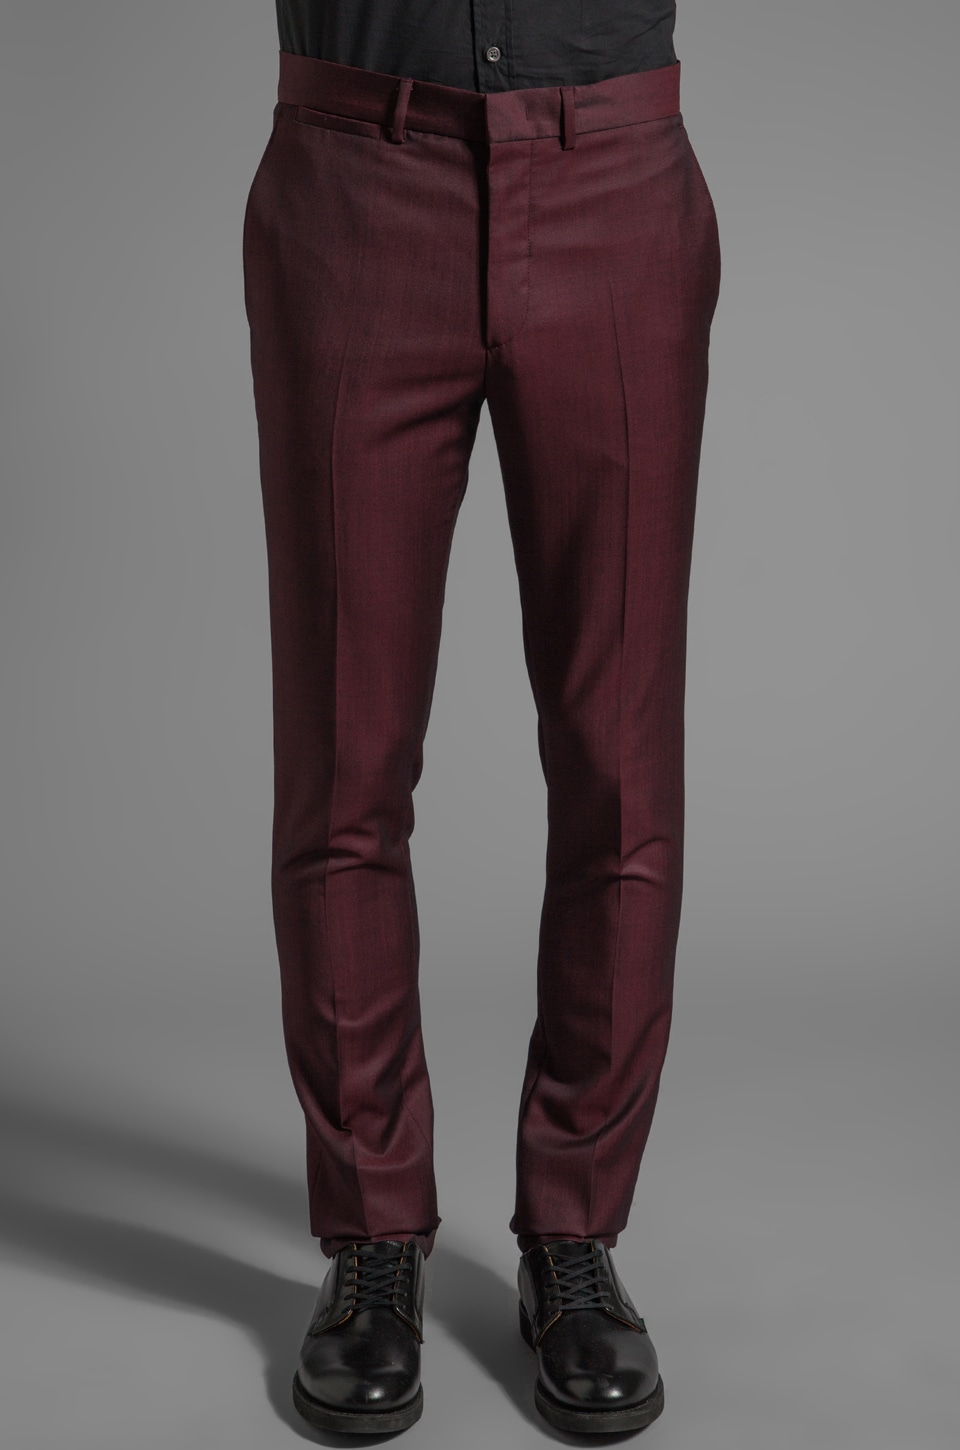 McQ Alexander McQueen Classic Slim Tailored Trouser in Ox Blood